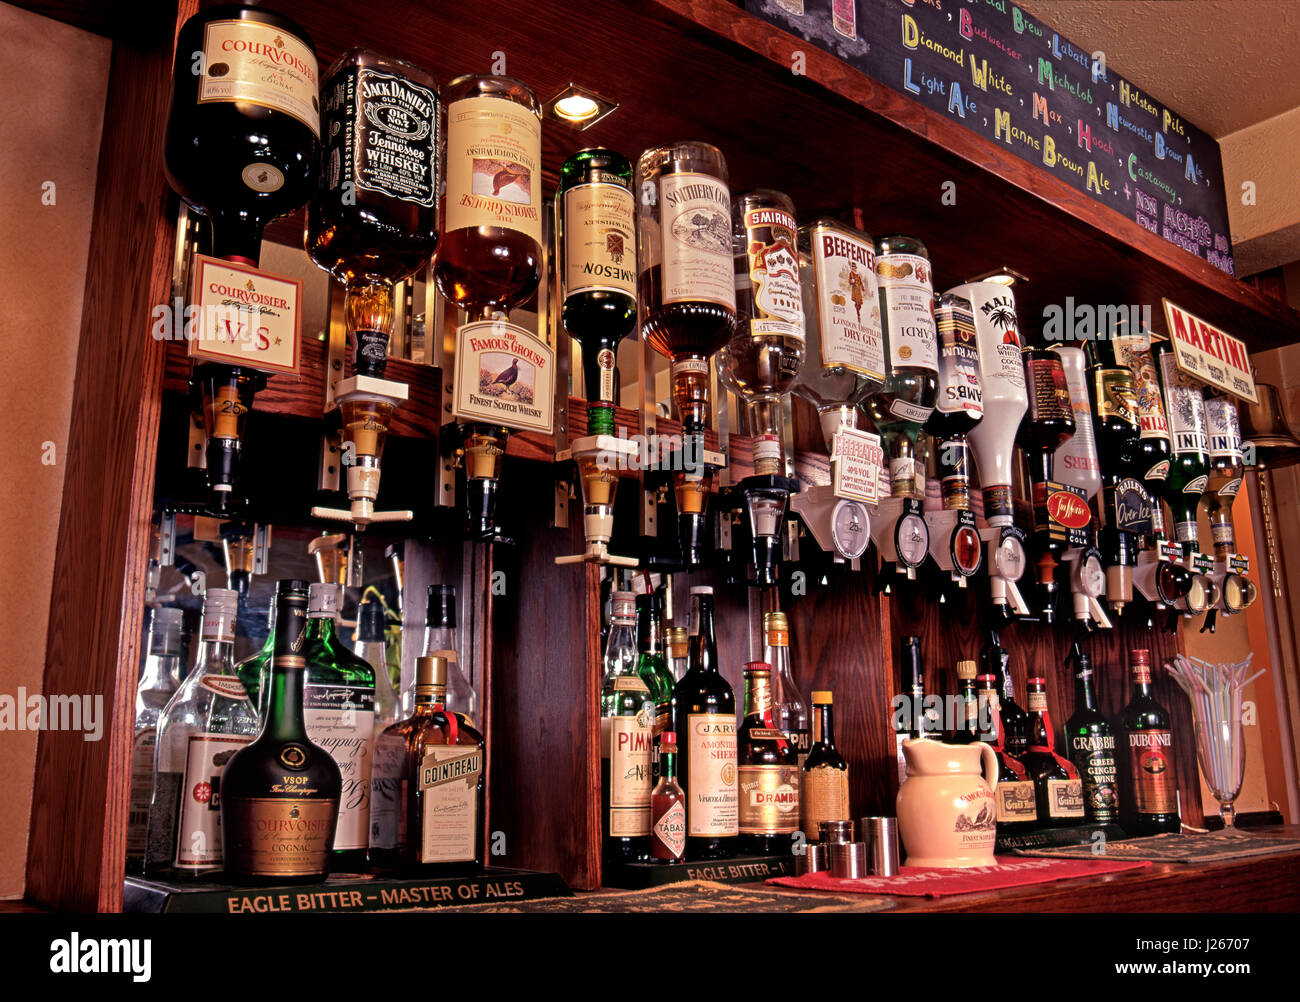 PUB SPIRITS OPTICS BAR view of variety of spirits, alcoholic drinks and optics on display for sale in a typical - Stock Image